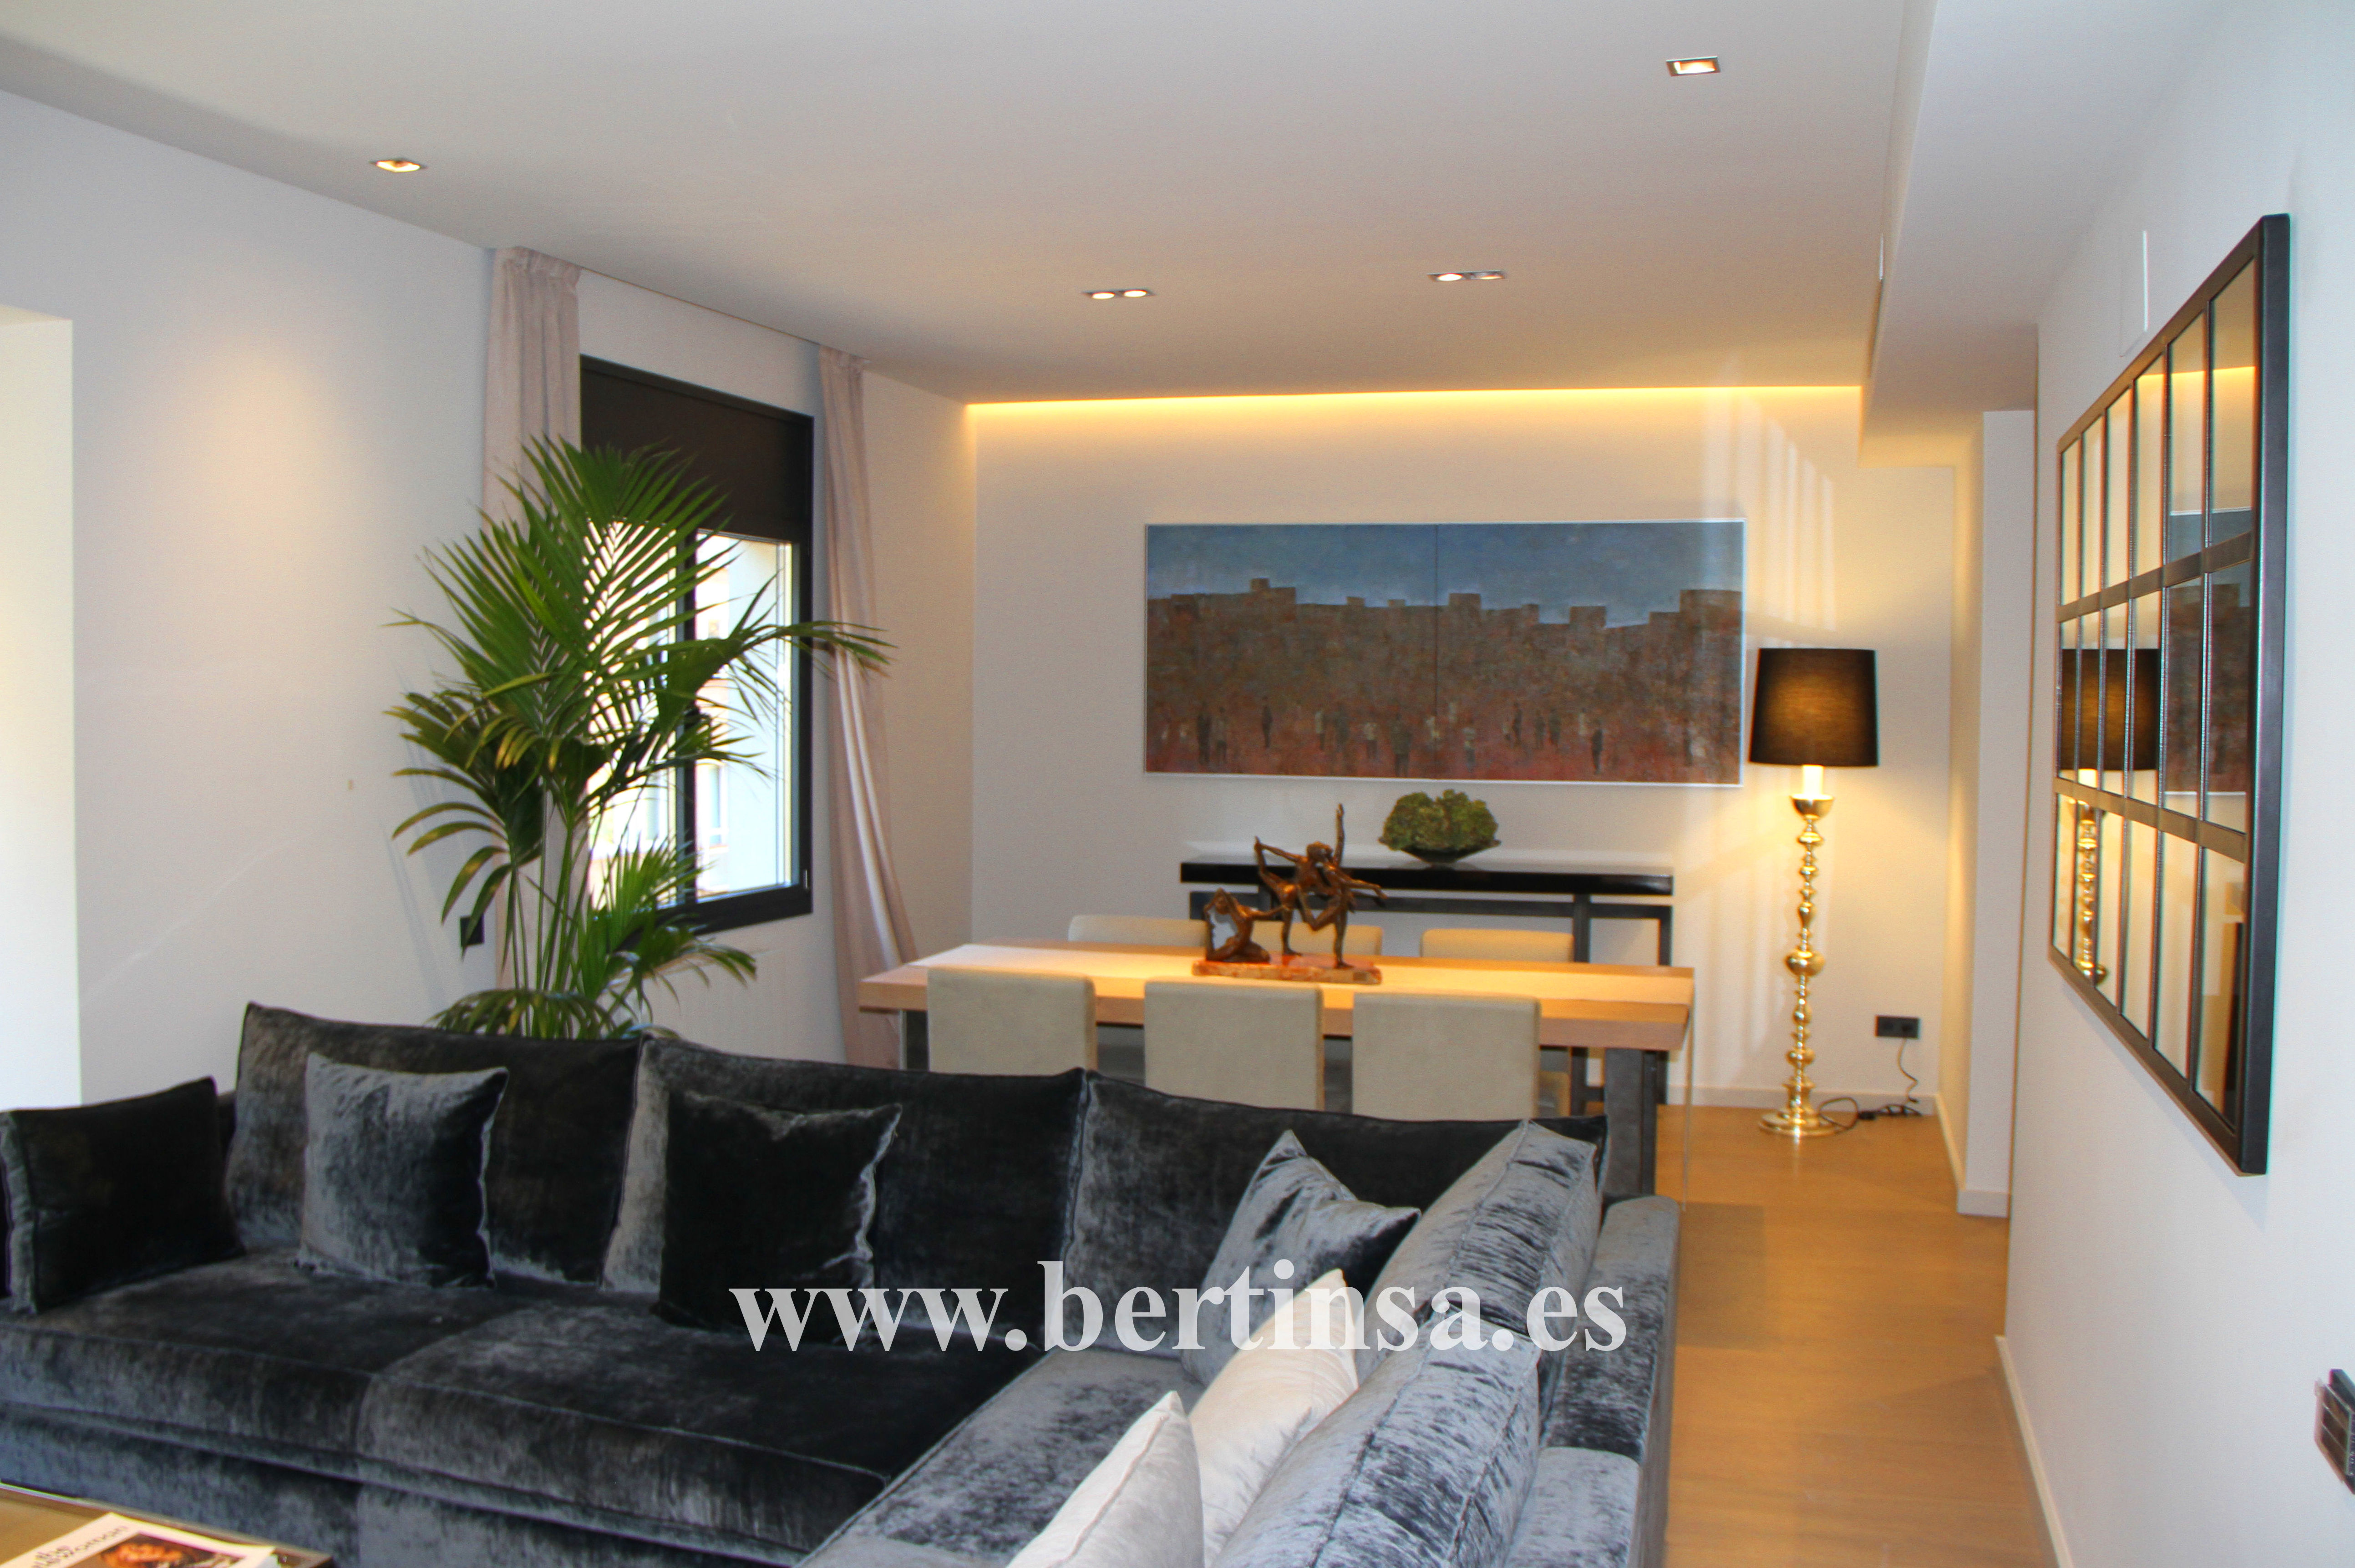 Apartamento sobre la Calle Calvet - 1.395.000€: Visita nuestras inmuebles de Bertinsa Real Estate, Investments & Sale Services